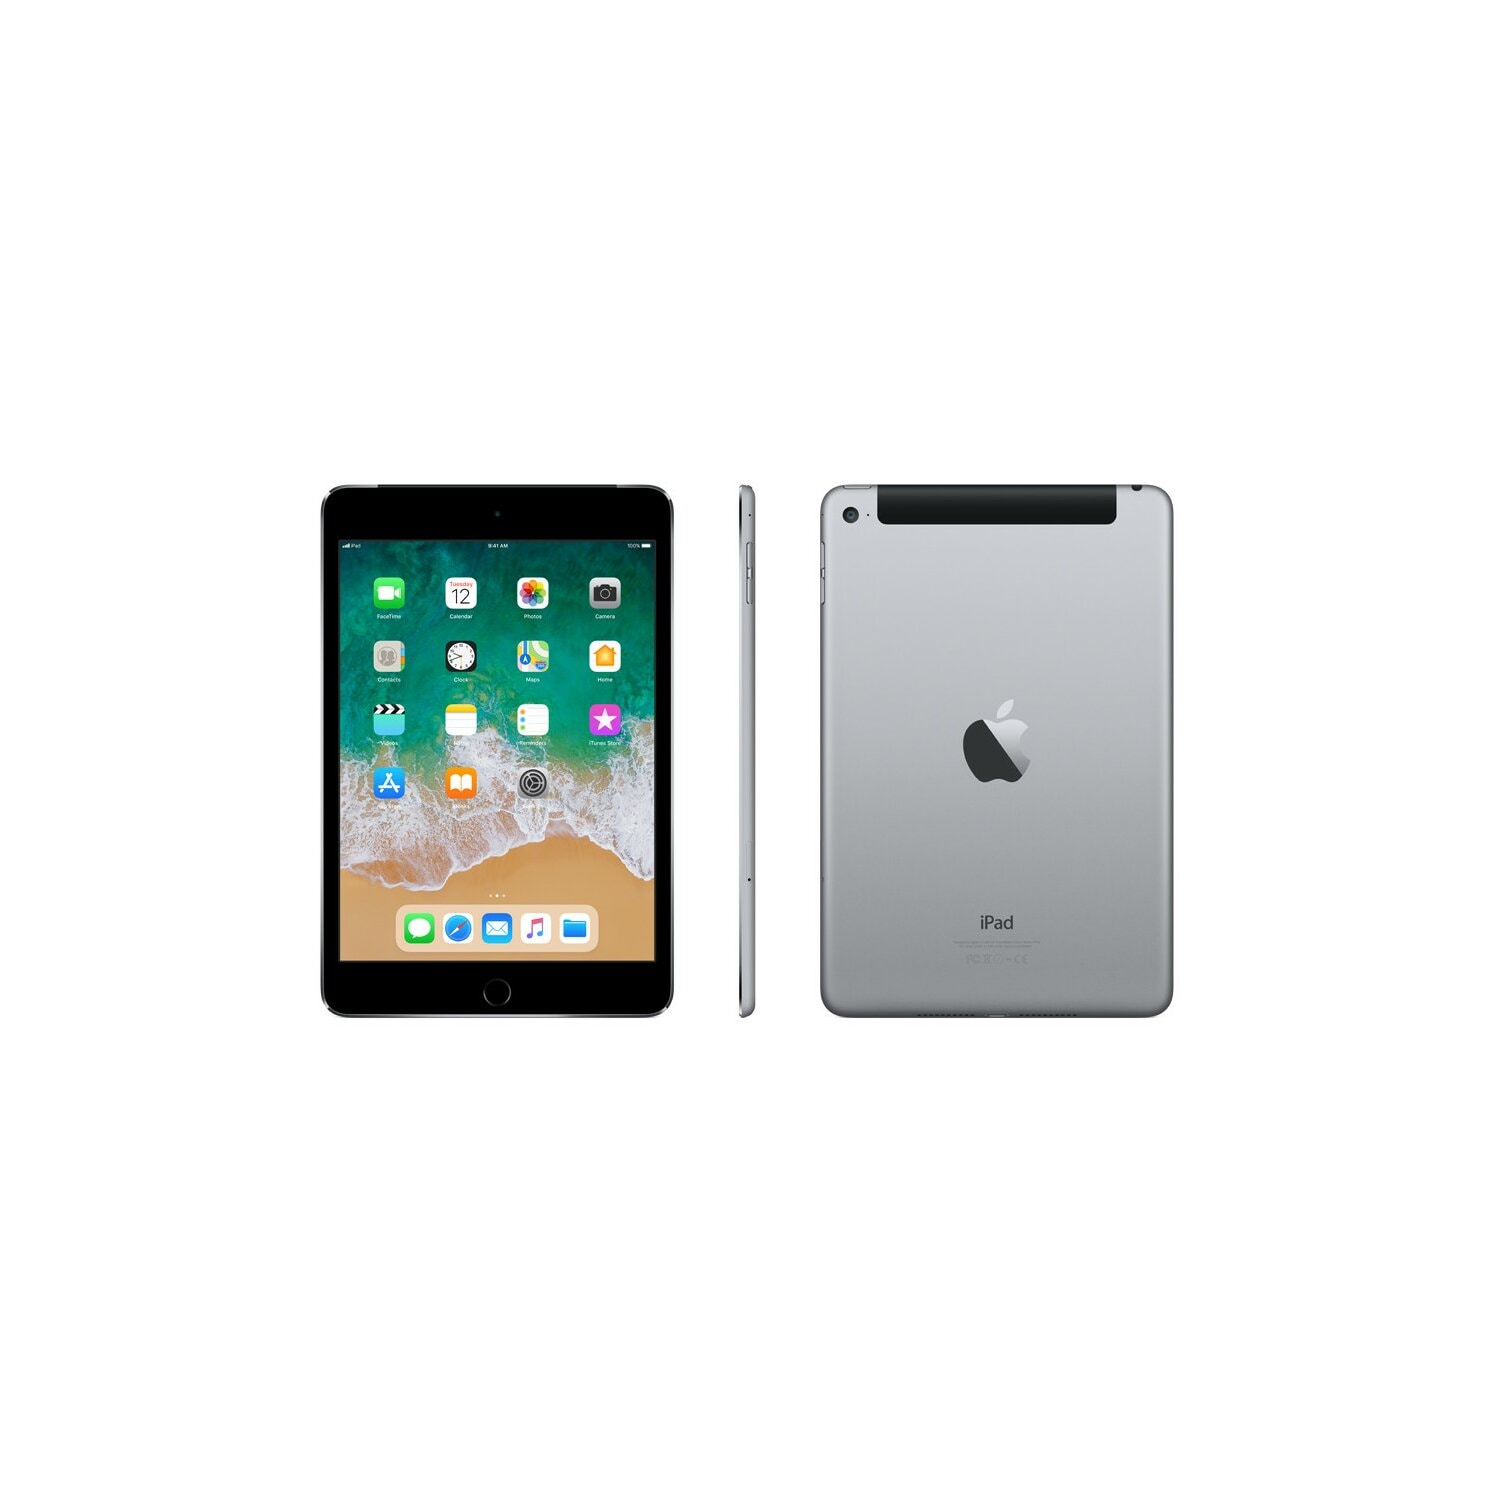 Tablet APPLE iPad mini 4 Wi-Fi + Cellular 128GB Gwiezdna szarość